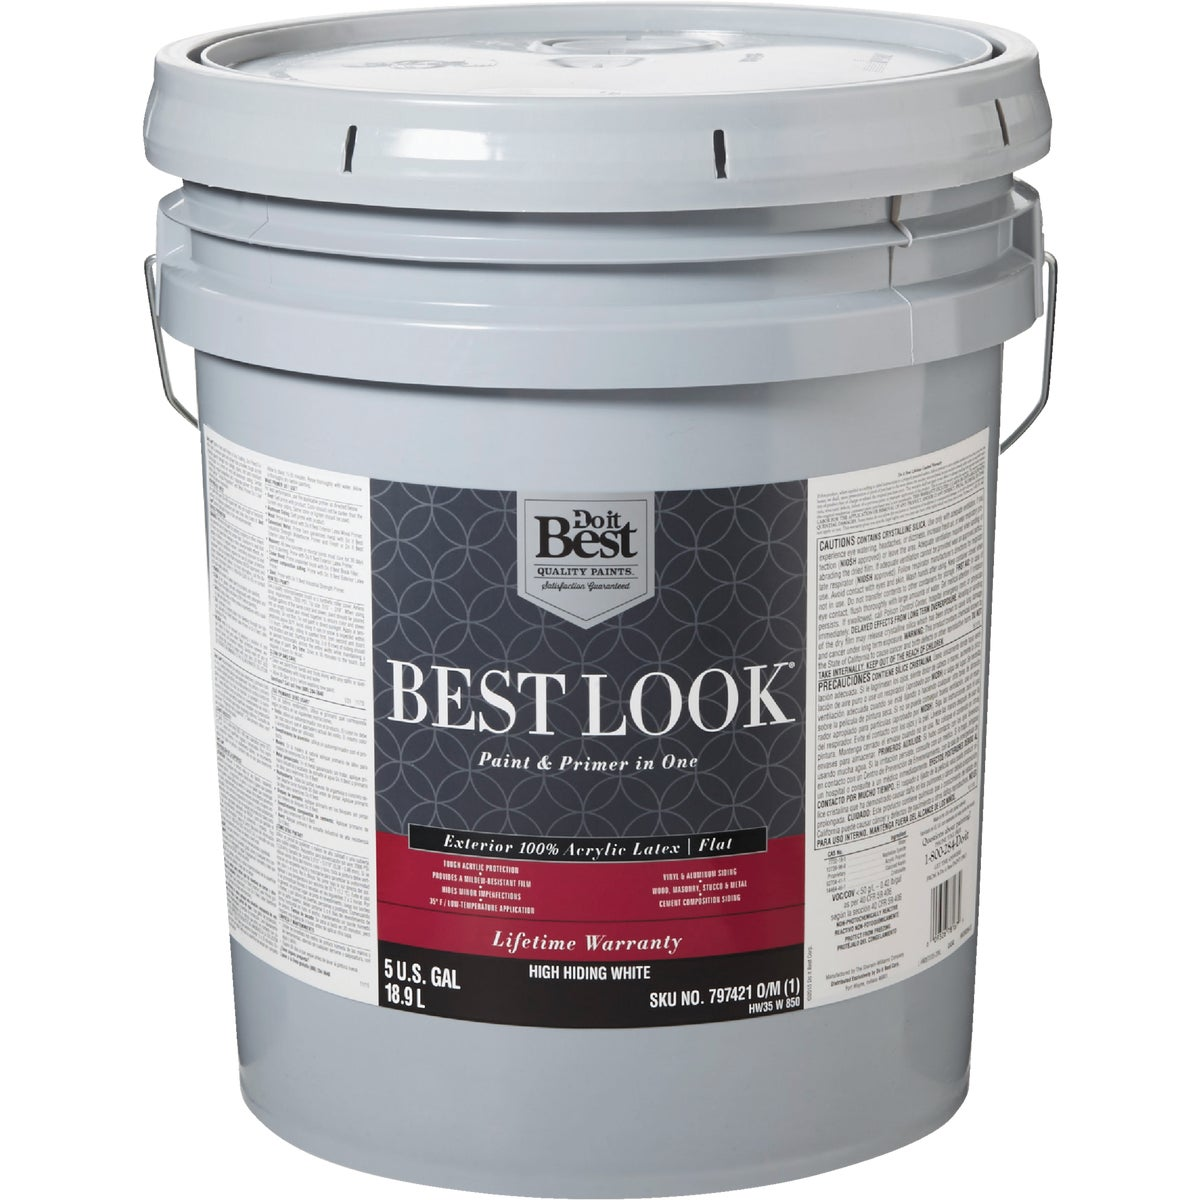 EXT FLT H HIDE WHT PAINT - HW35W0850-20 by Do it Best